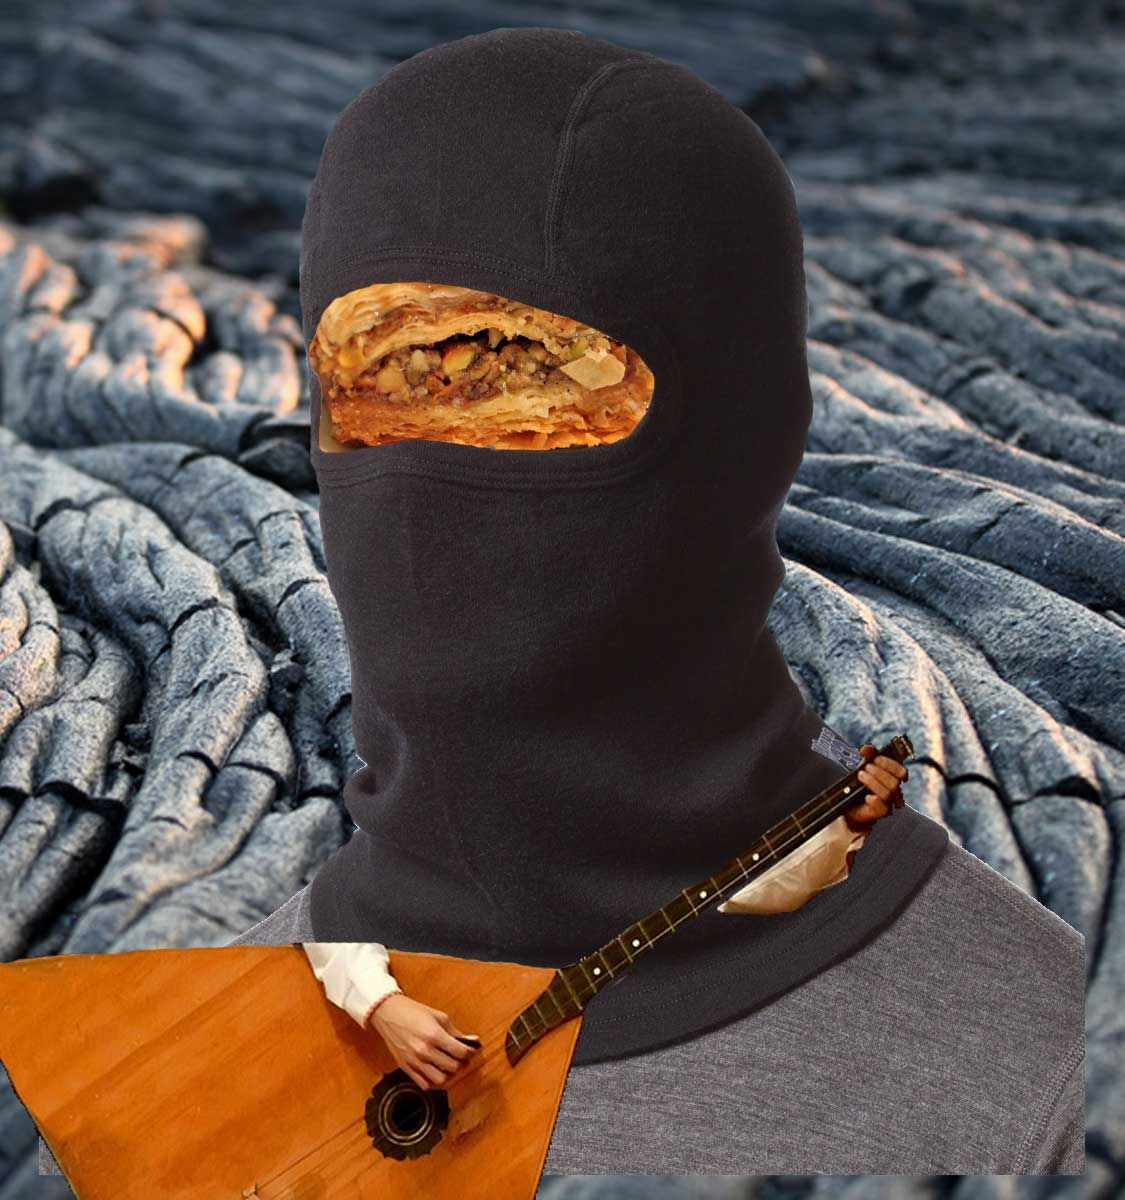 A baklava wearing a balaclava while playing a balalaika on black lava